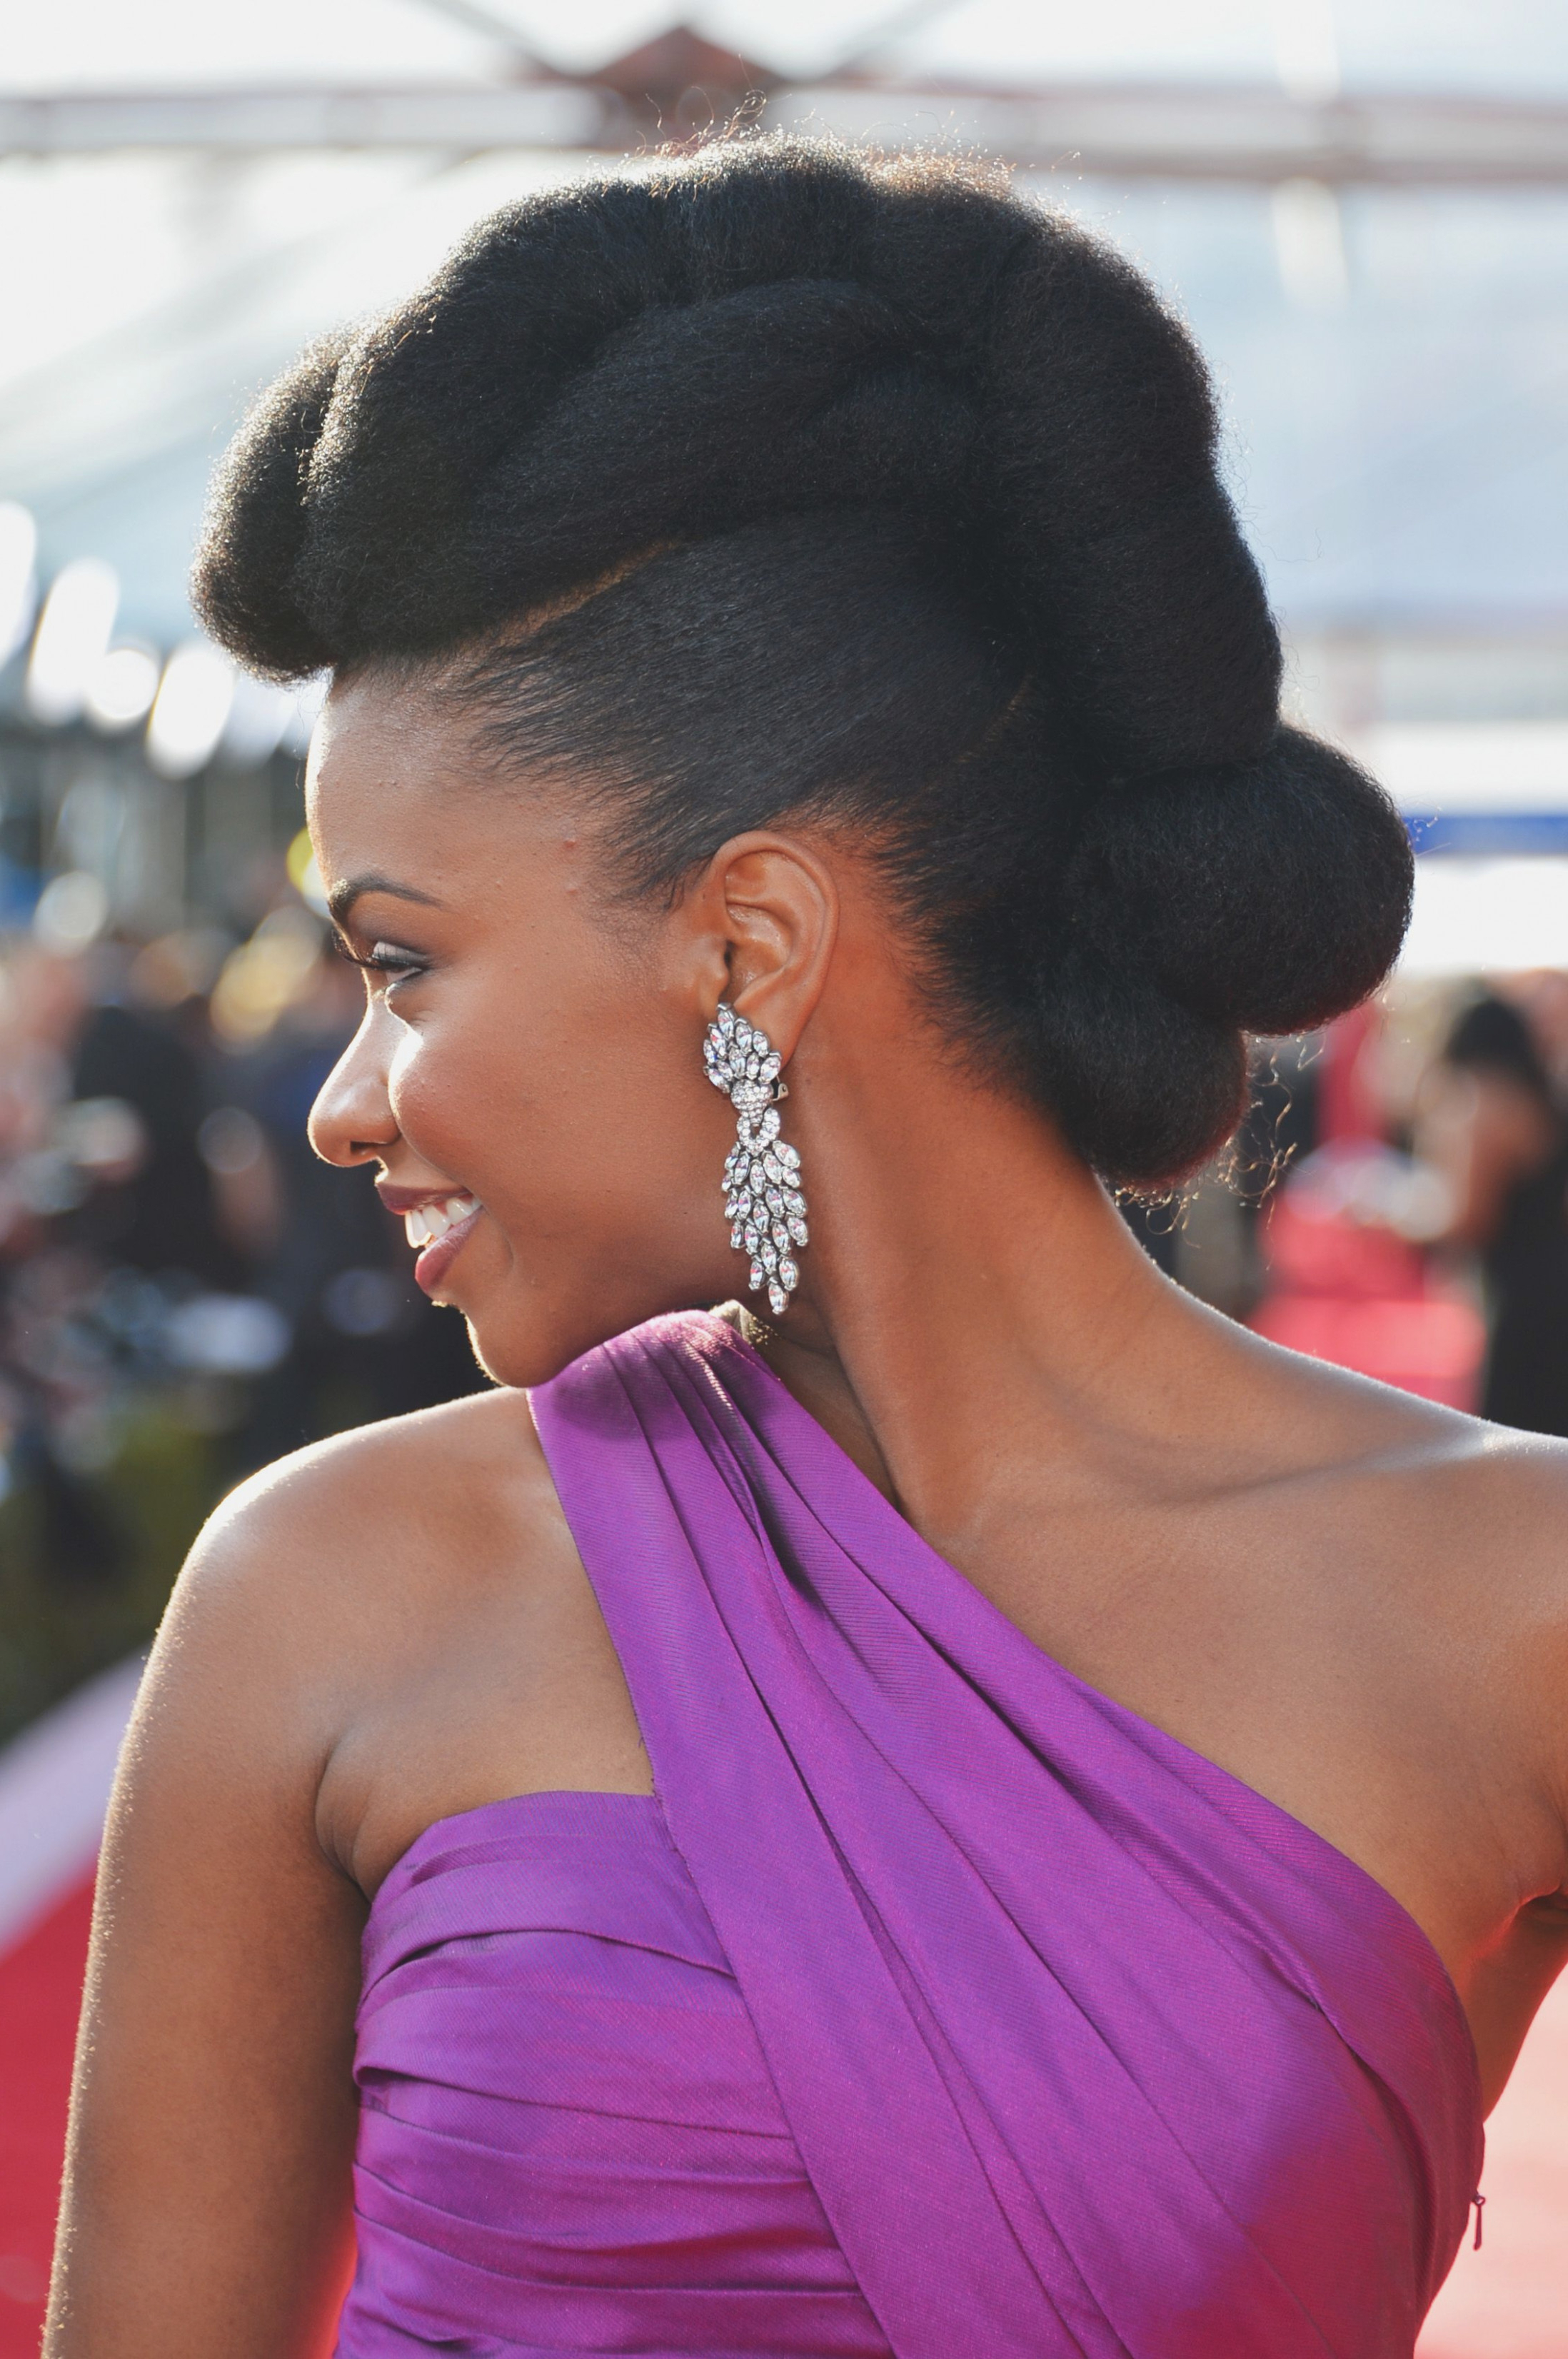 16 Easy Natural Hairstyles For Black Women – Short, Medium – Twist For Recent Medium Haircuts For Natural Hair Black Women (Gallery 18 of 20)